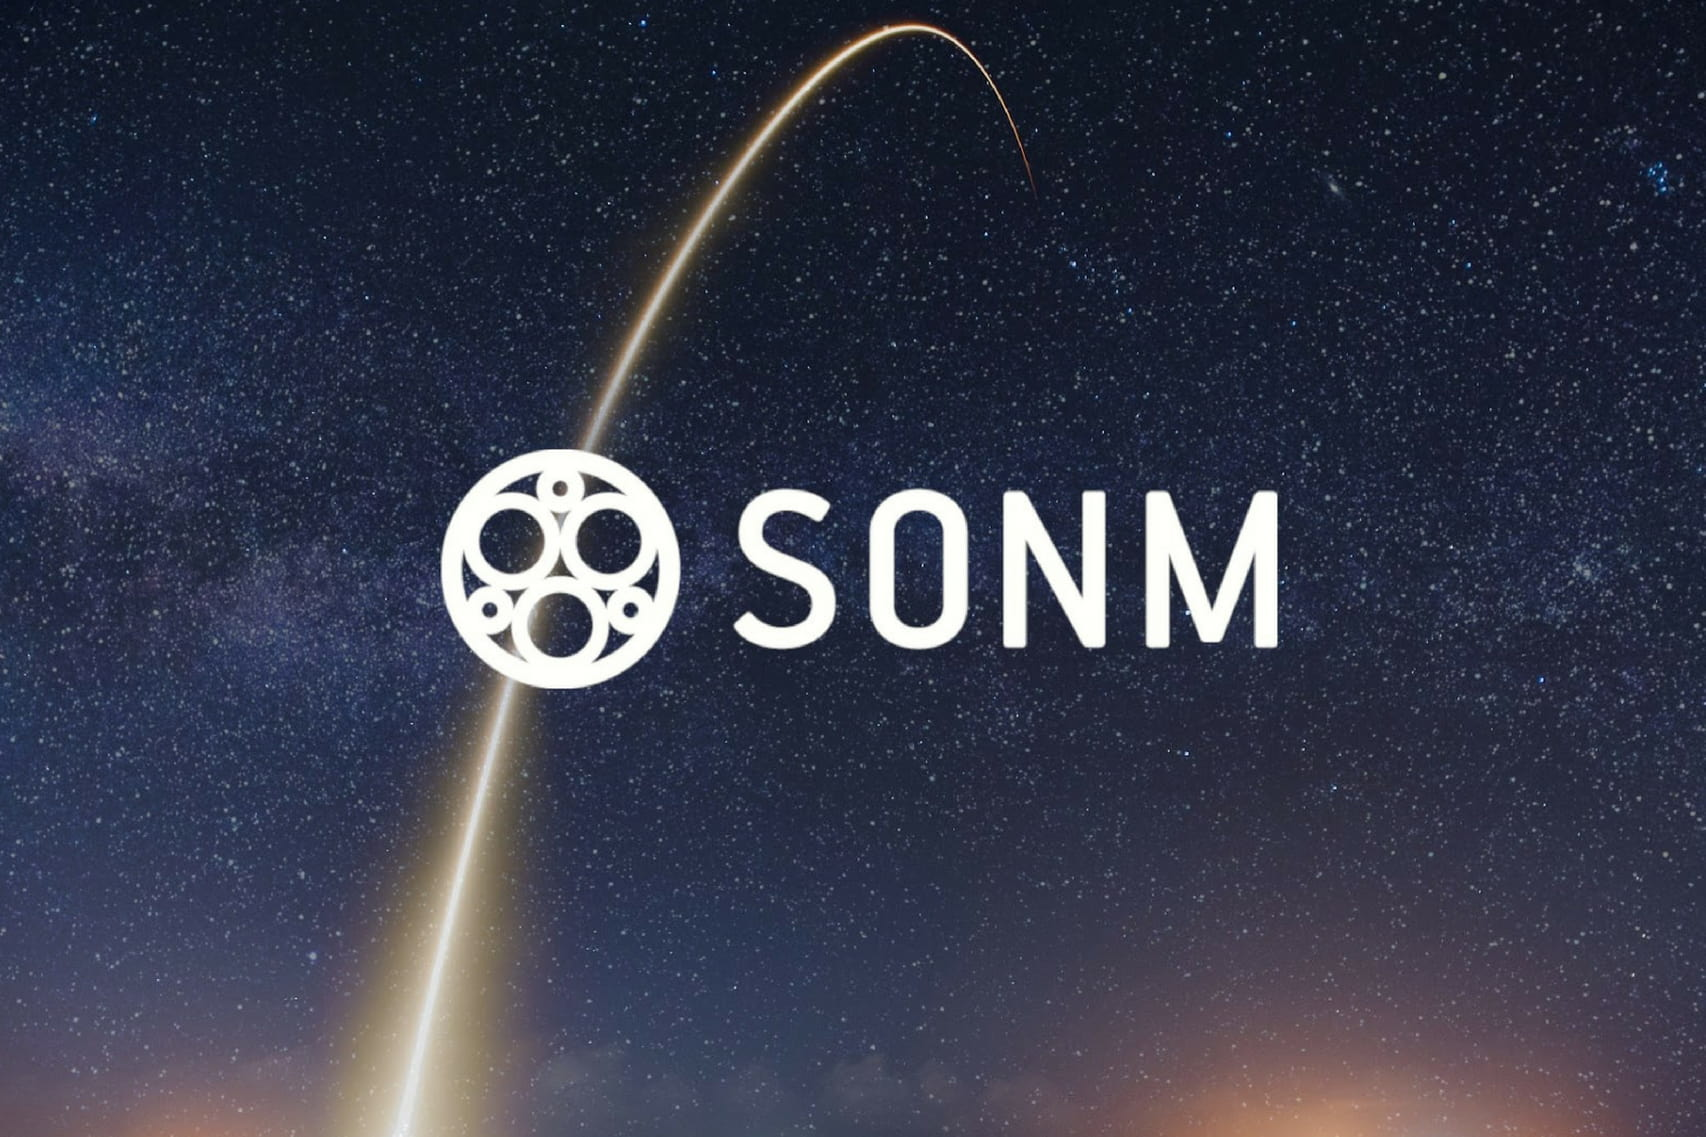 SOMN is Now Live!